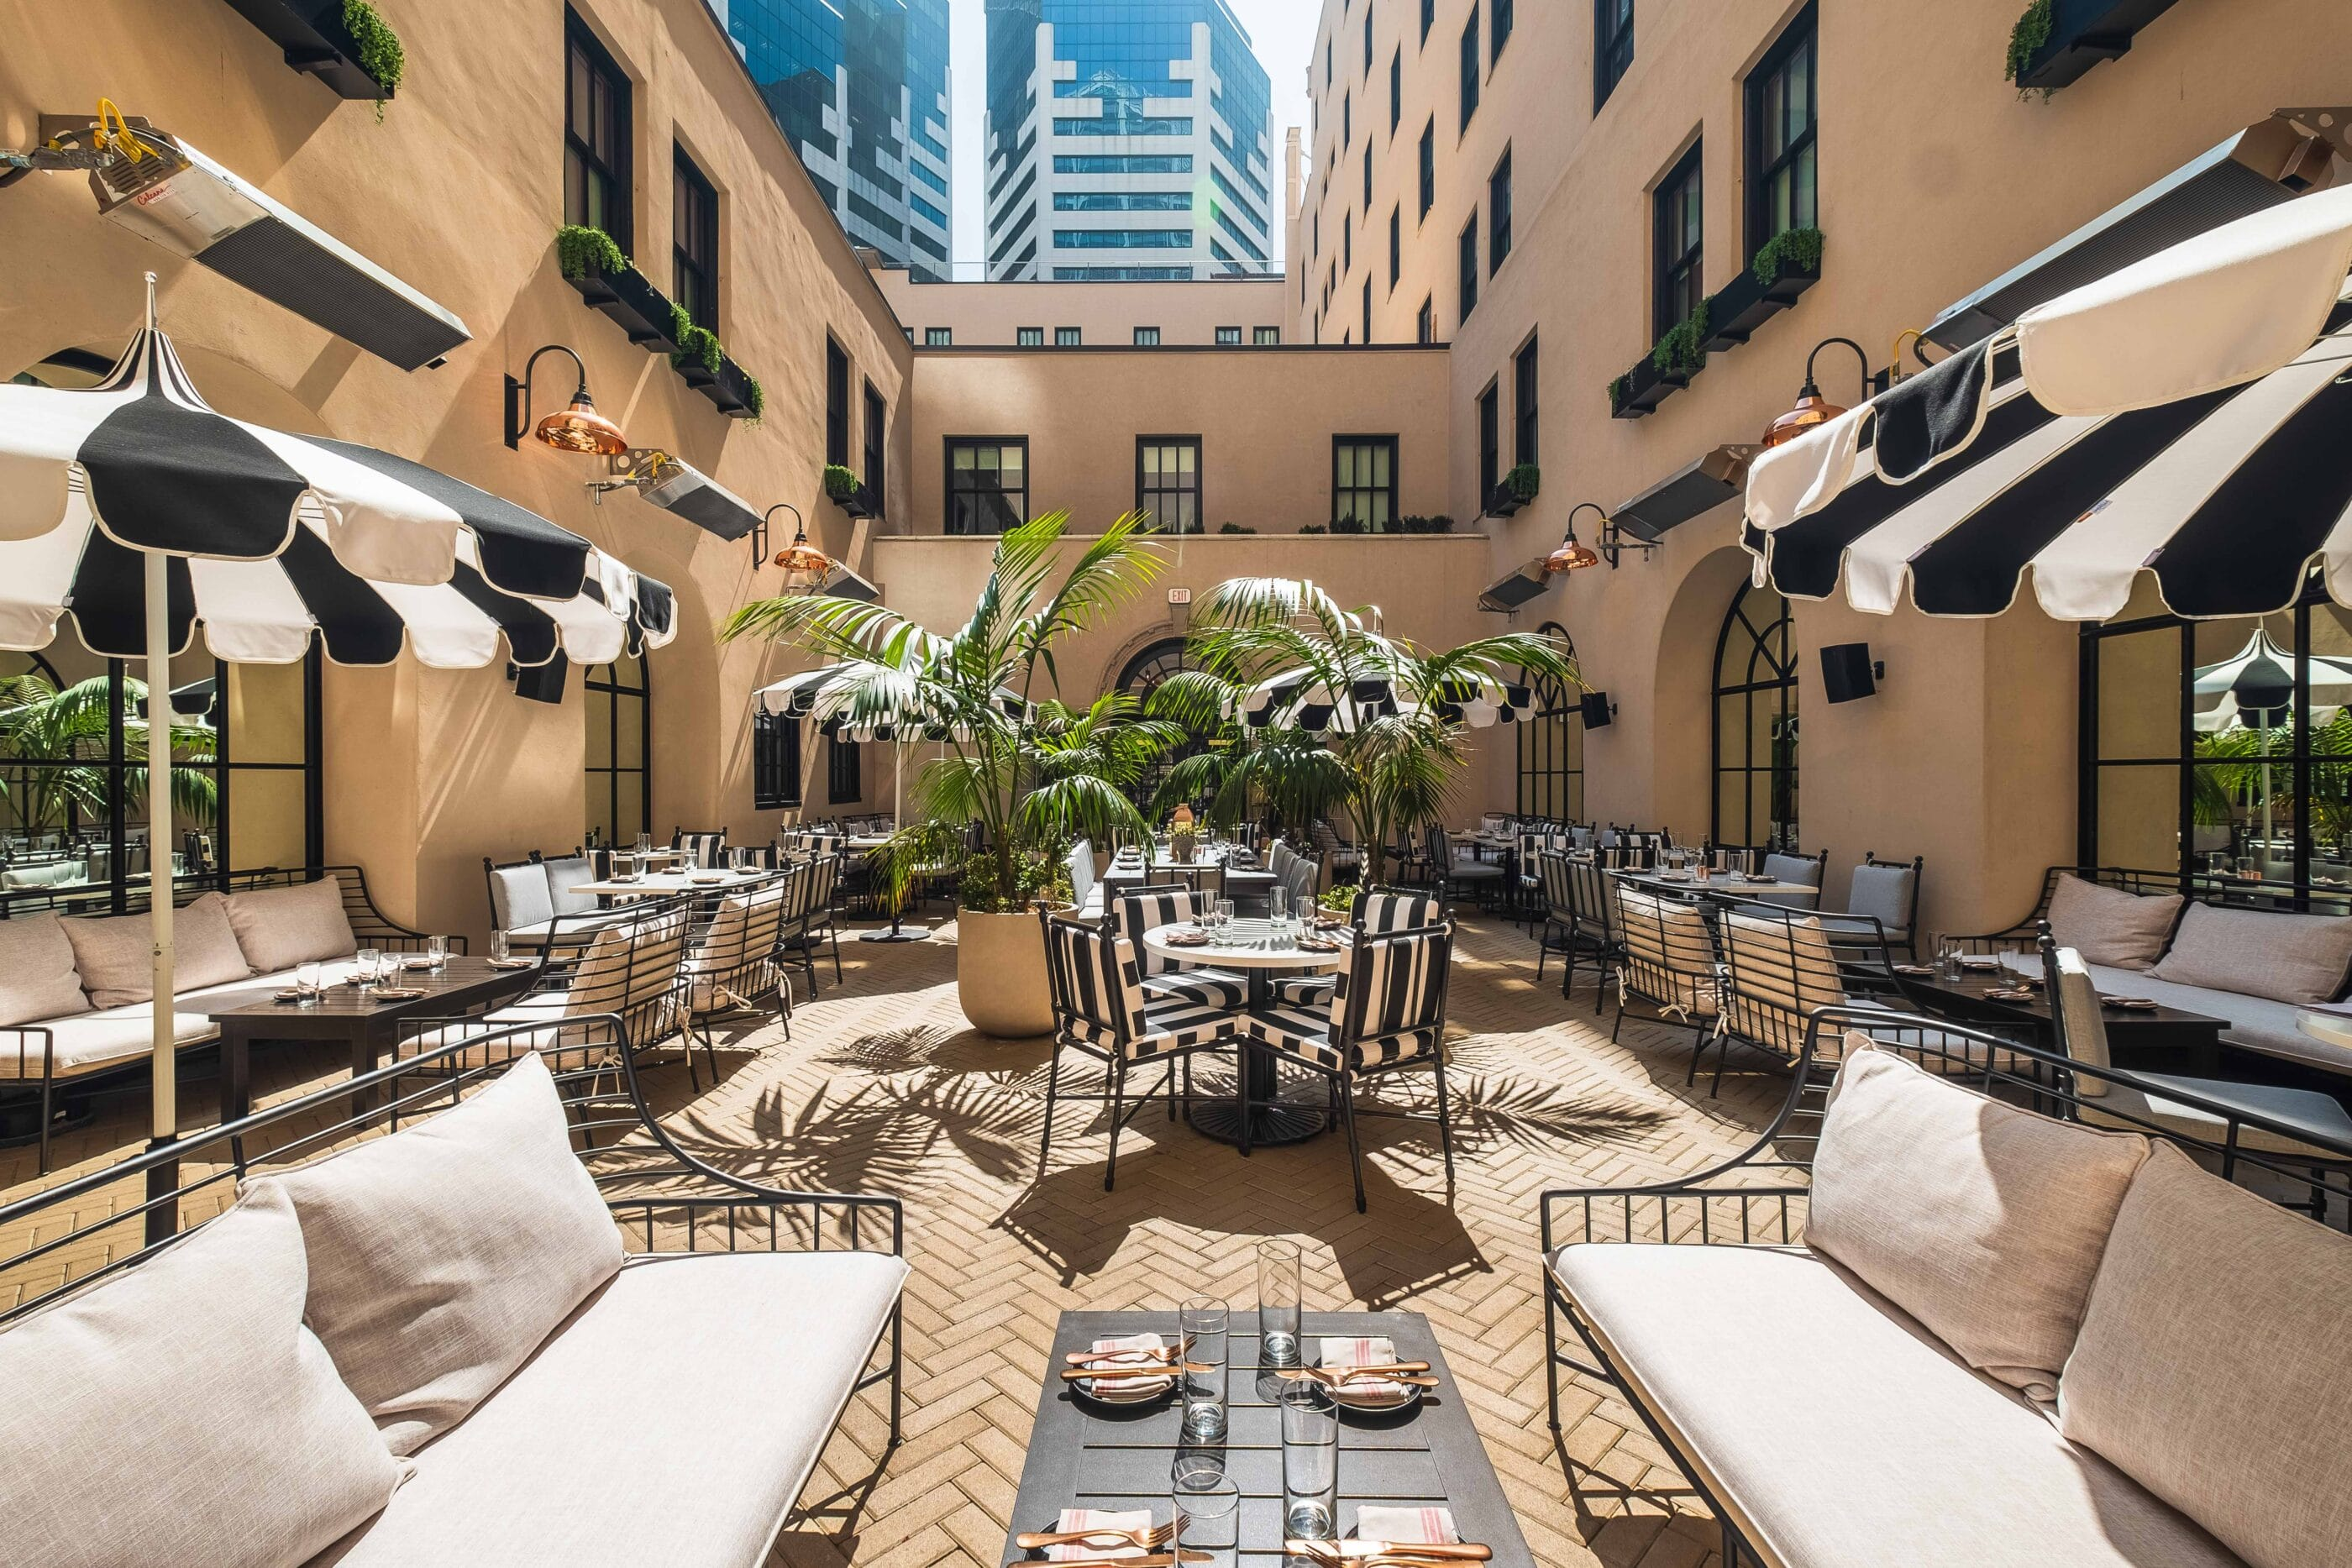 Al fresco dining at Luca Restaurant in a courtyard at The Guild Hotel San Diego.